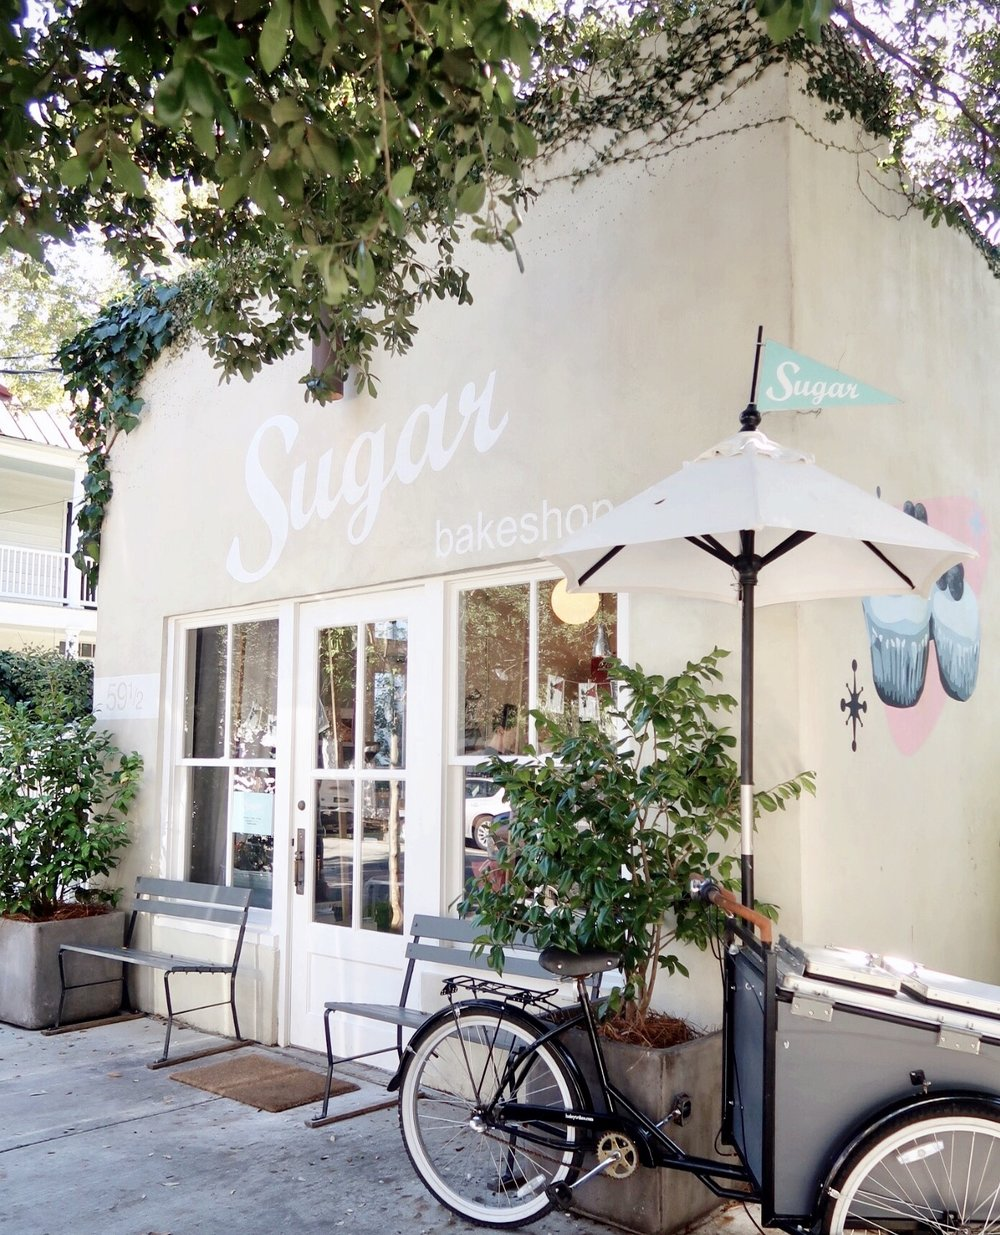 sugar bakeshop | weekend in charleston, sc